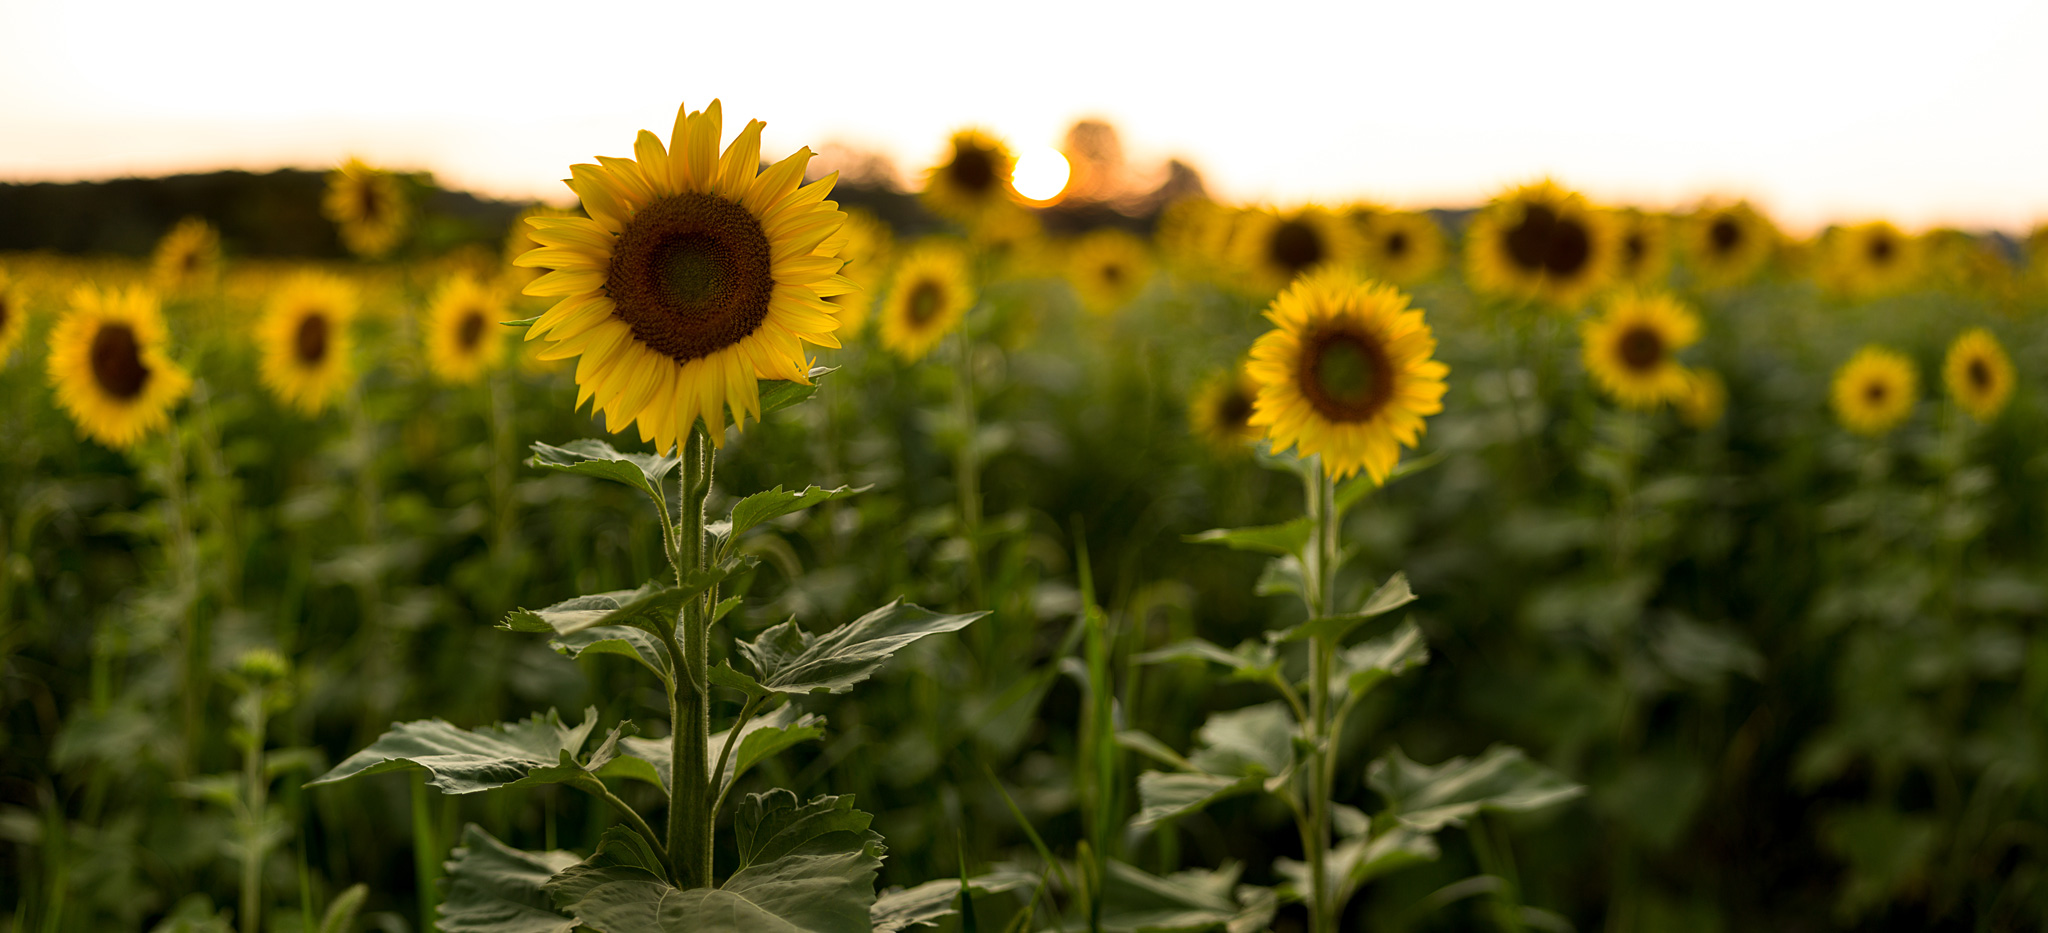 Sussex-sunflowers-2015-17-PSedit-2